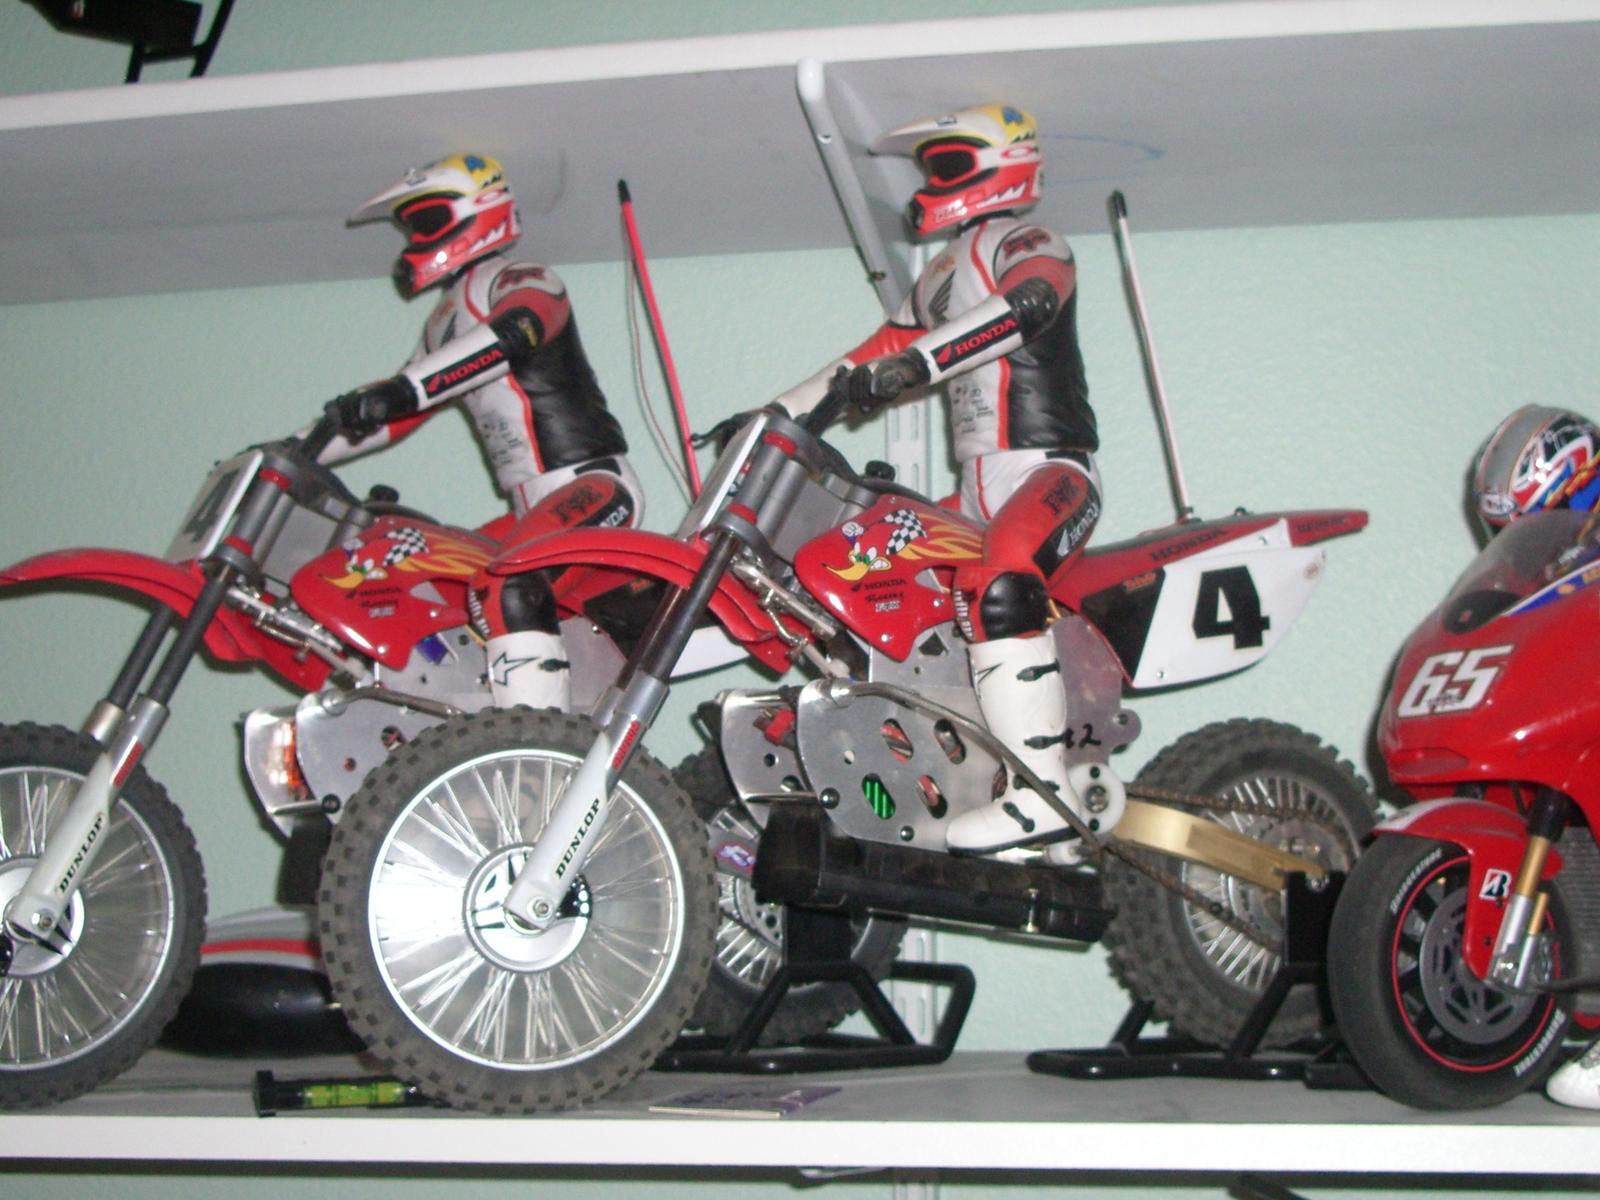 The one in the front is the brushless